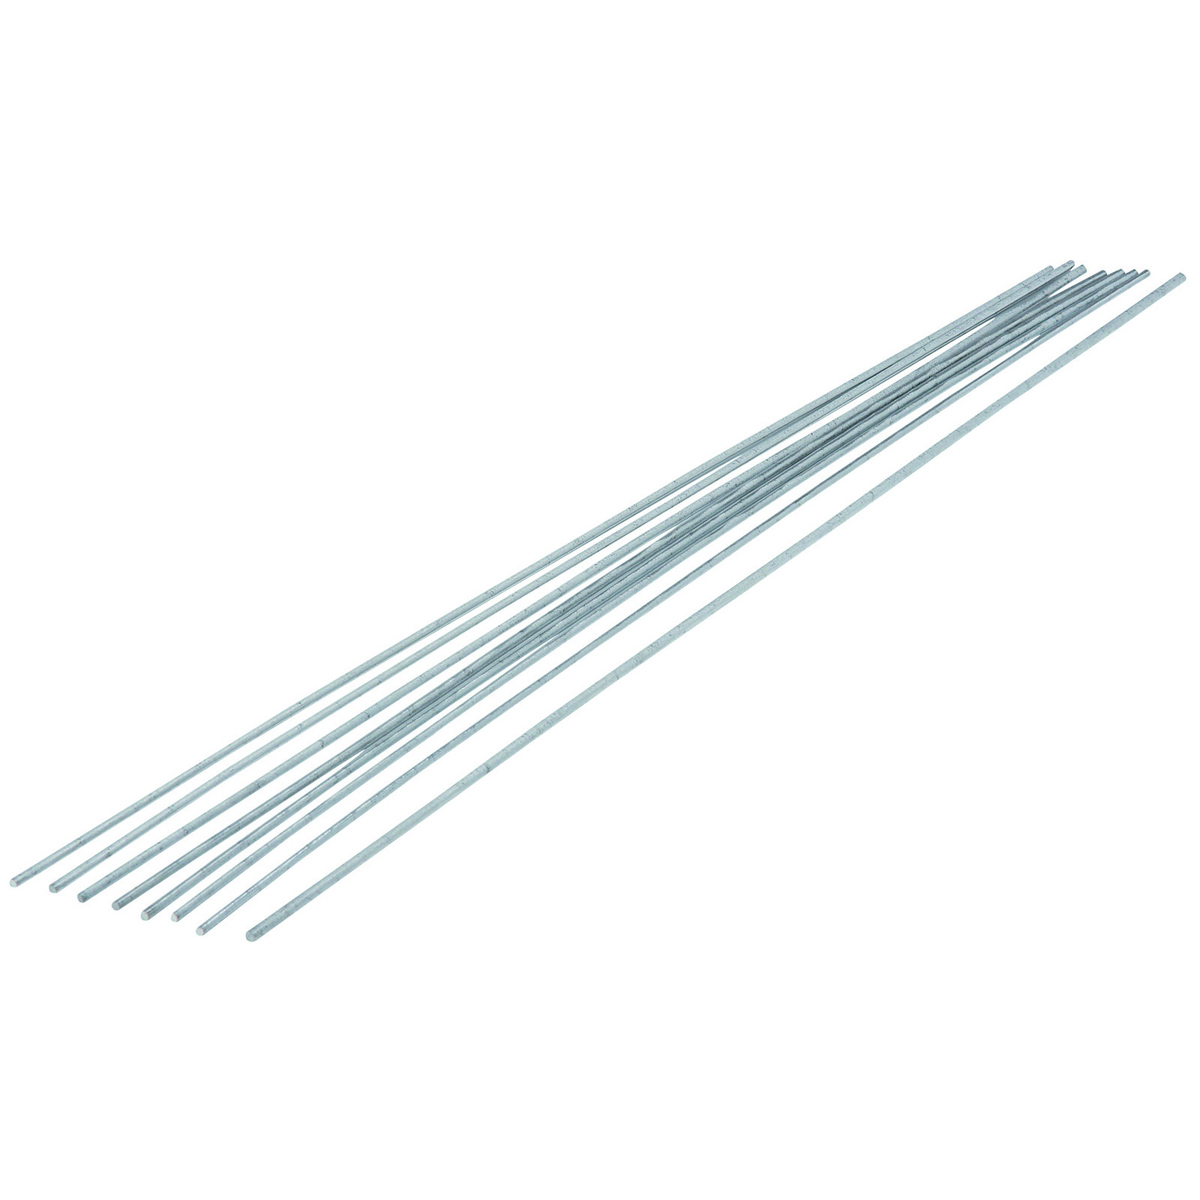 Aluminum Welding Rods Pack Of 8 Low Temperature How To Install A New Circuit At The Home Depot